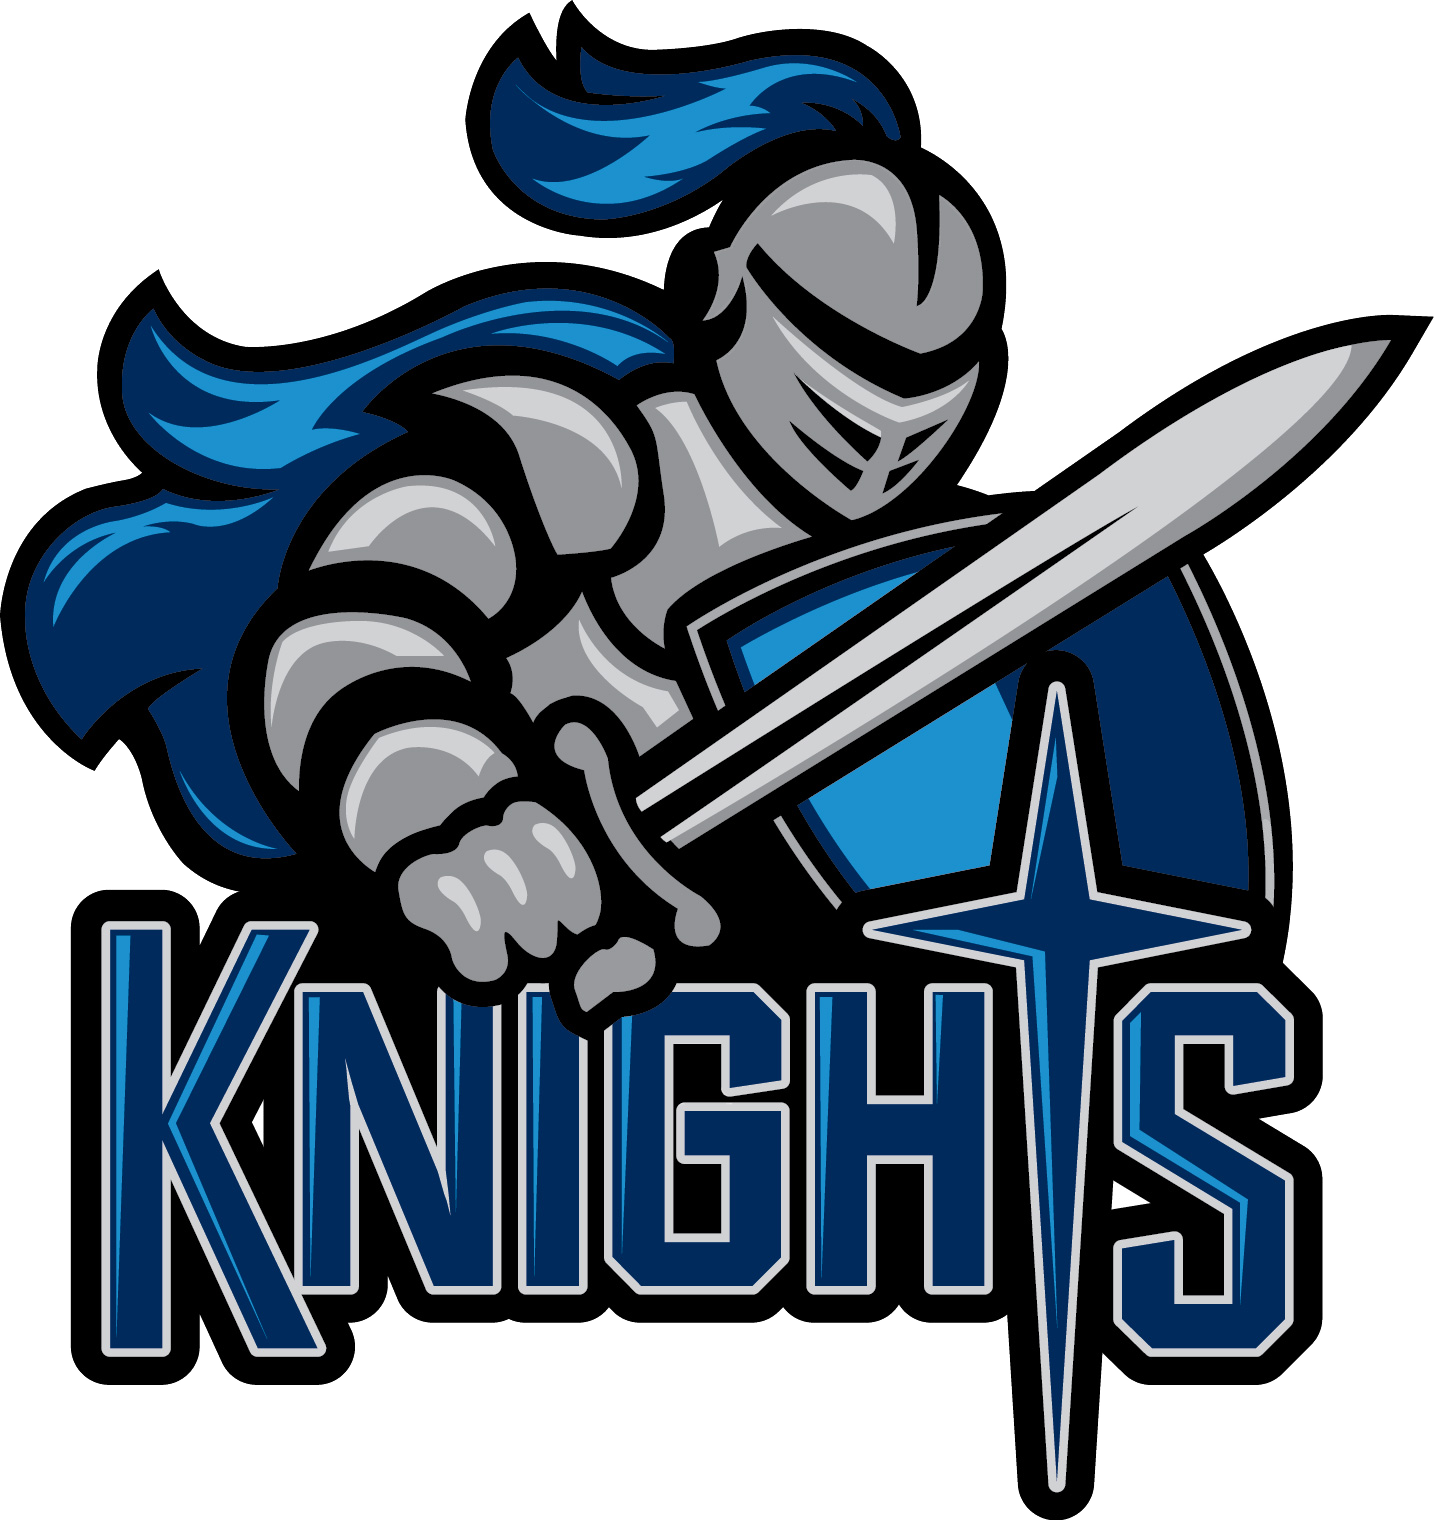 Kinghts logo sports siouxlandmatters. Warrior clipart wordmark